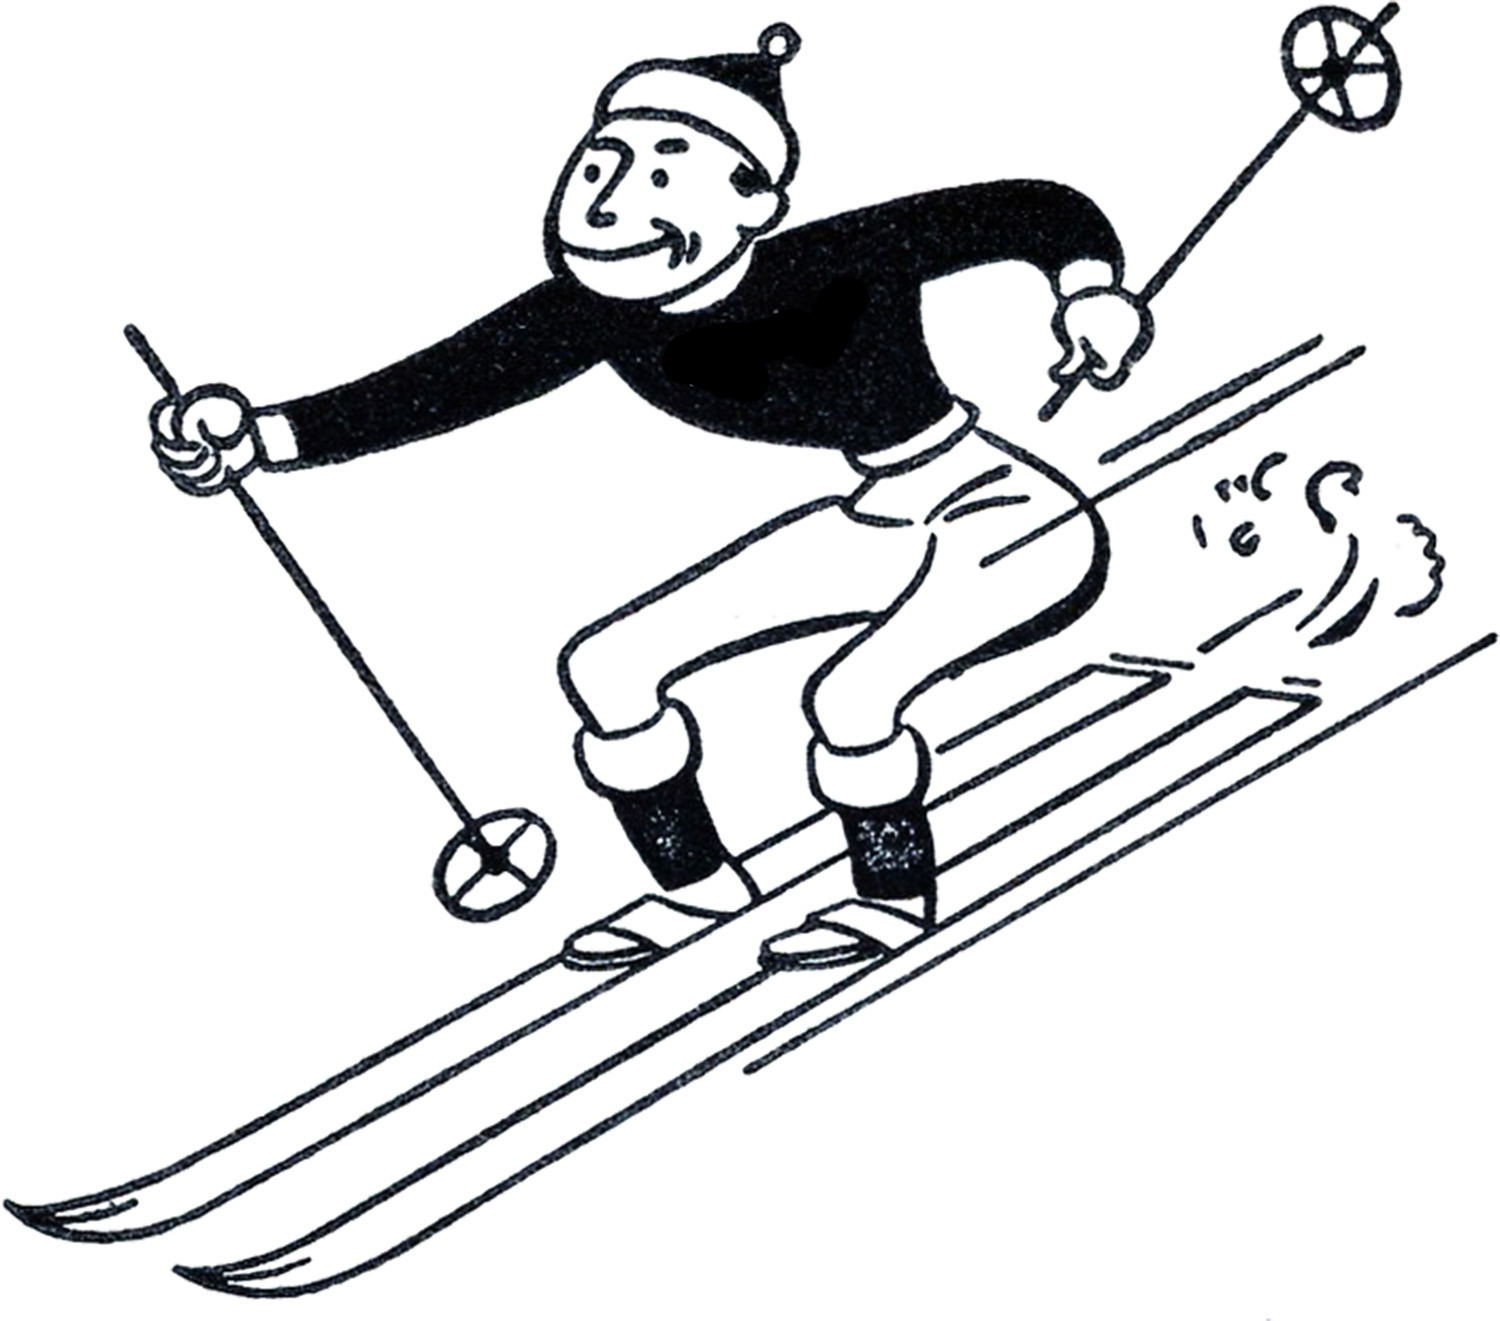 Free Images Skiing, Download Free Clip Art, Free Clip Art on.